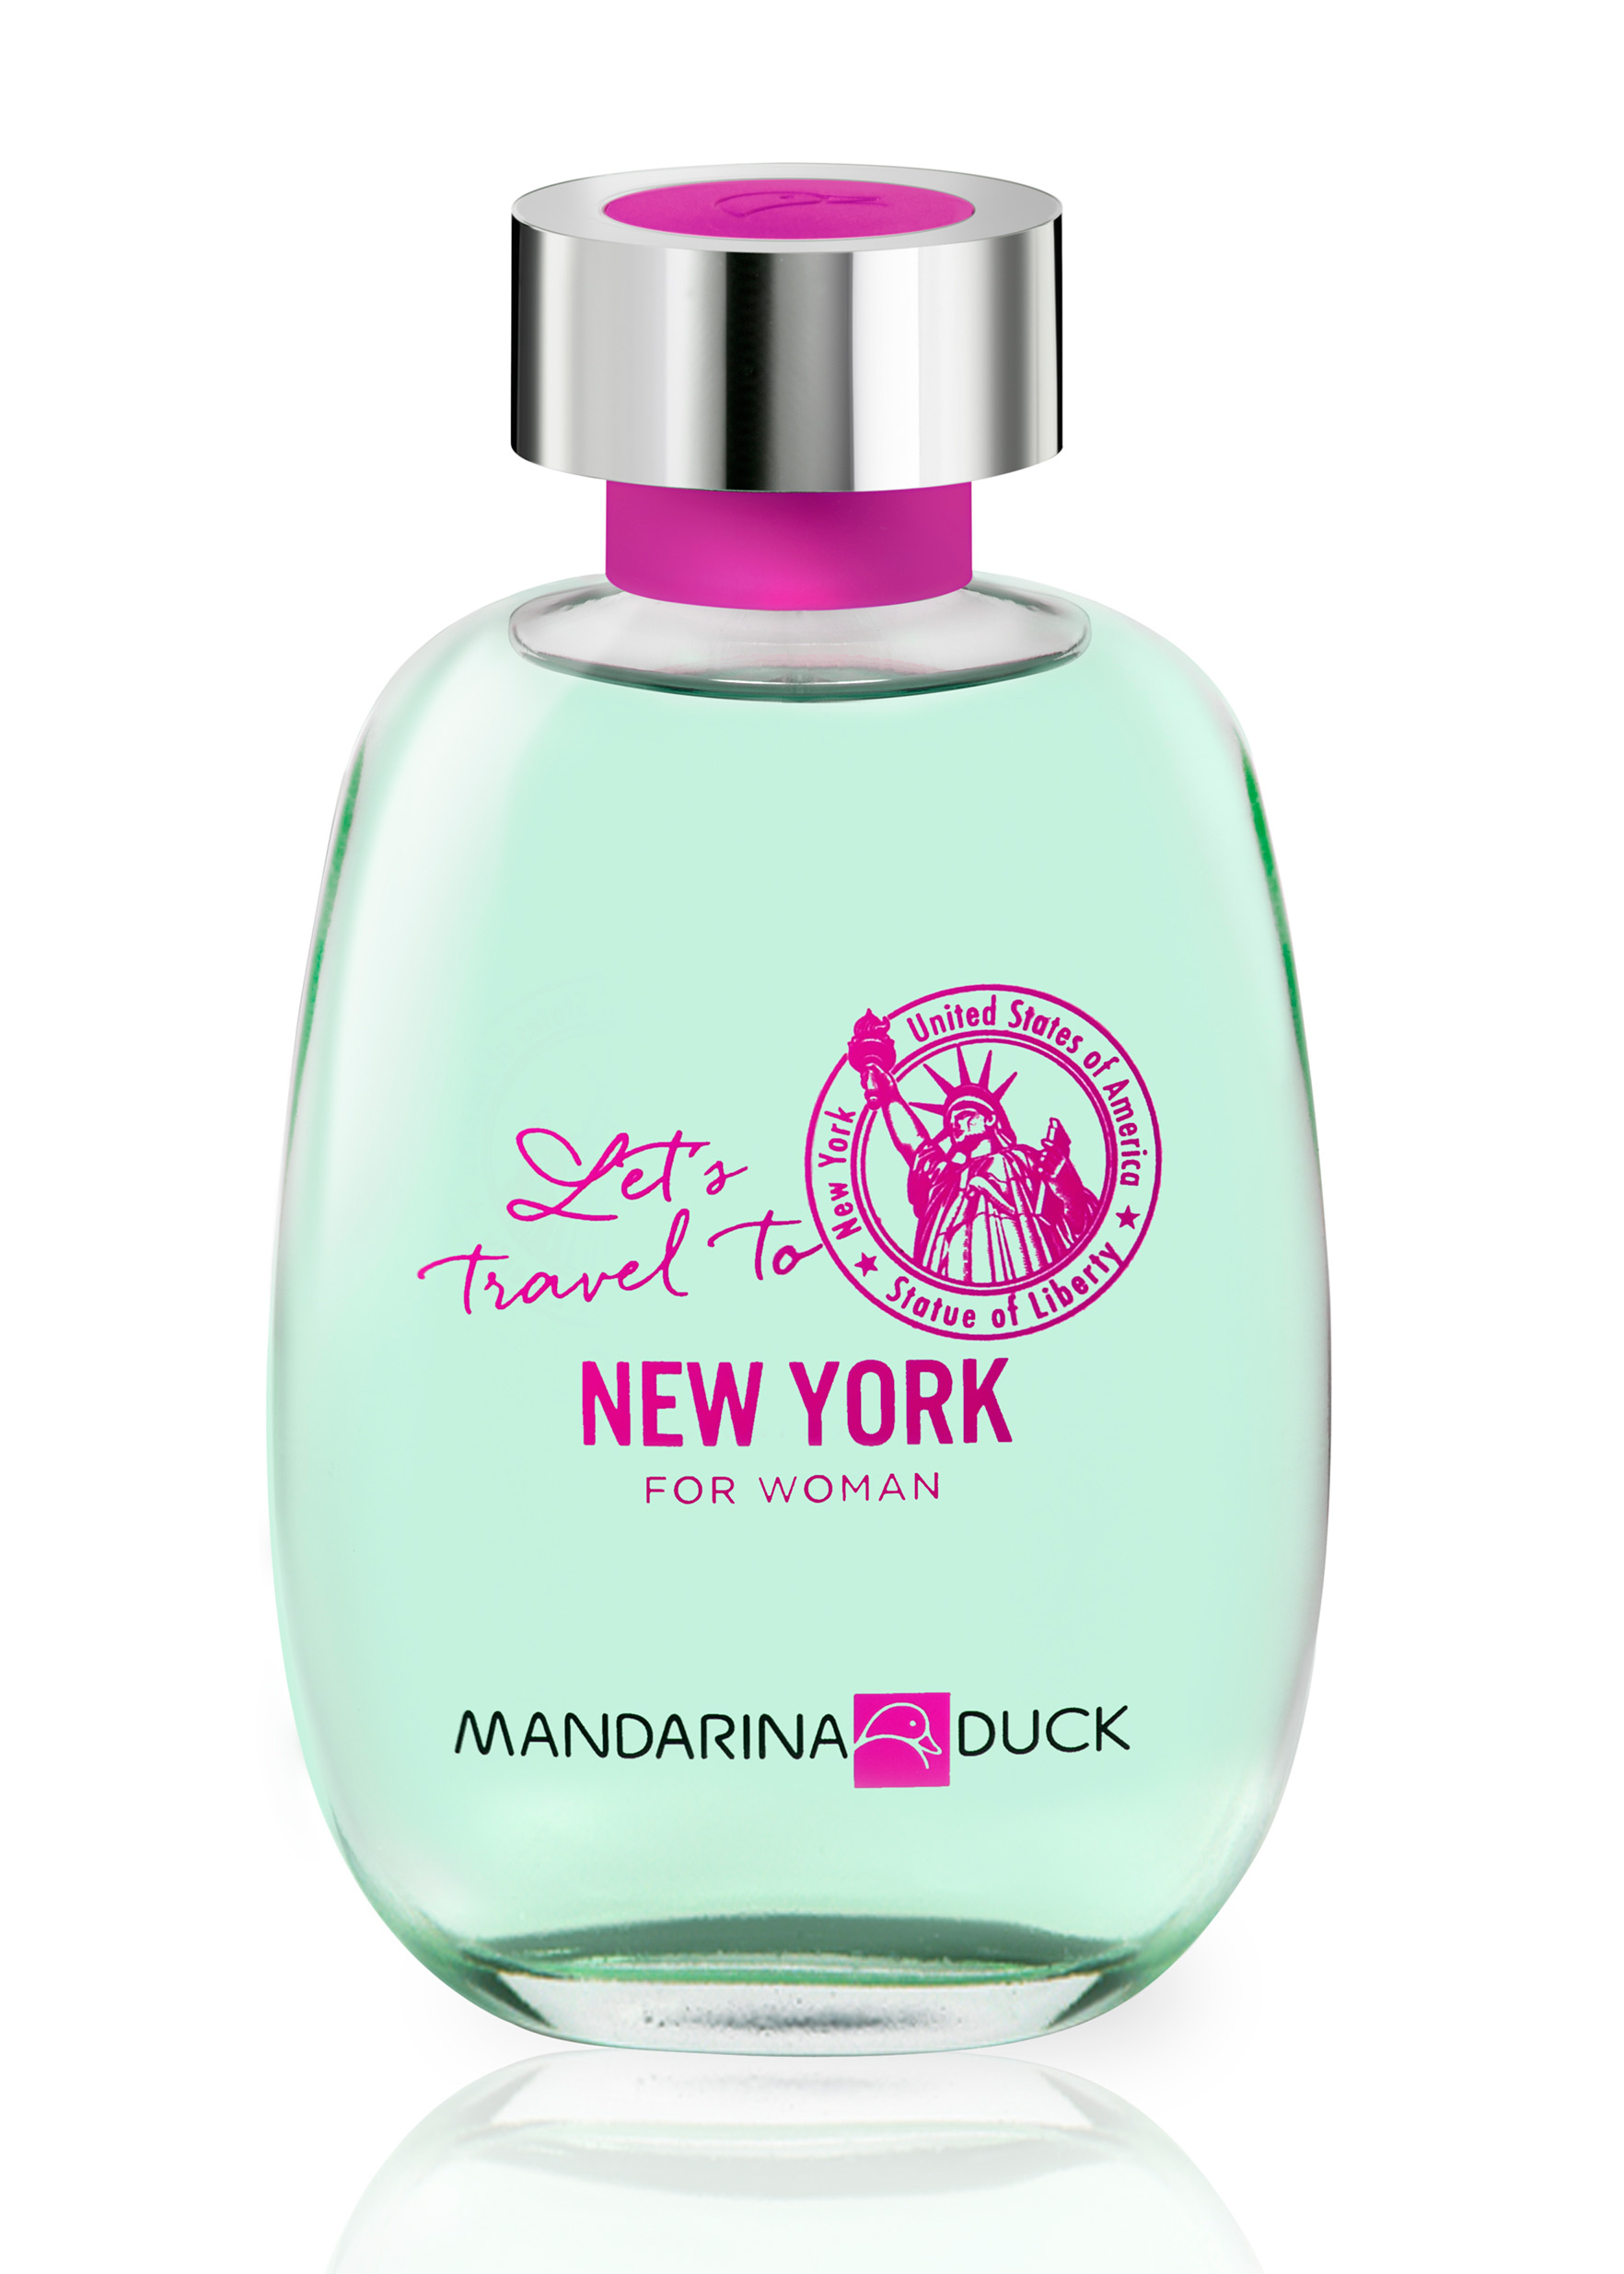 Let s travel to new york for woman mandarina duck perfume for Mandarina duck perfume